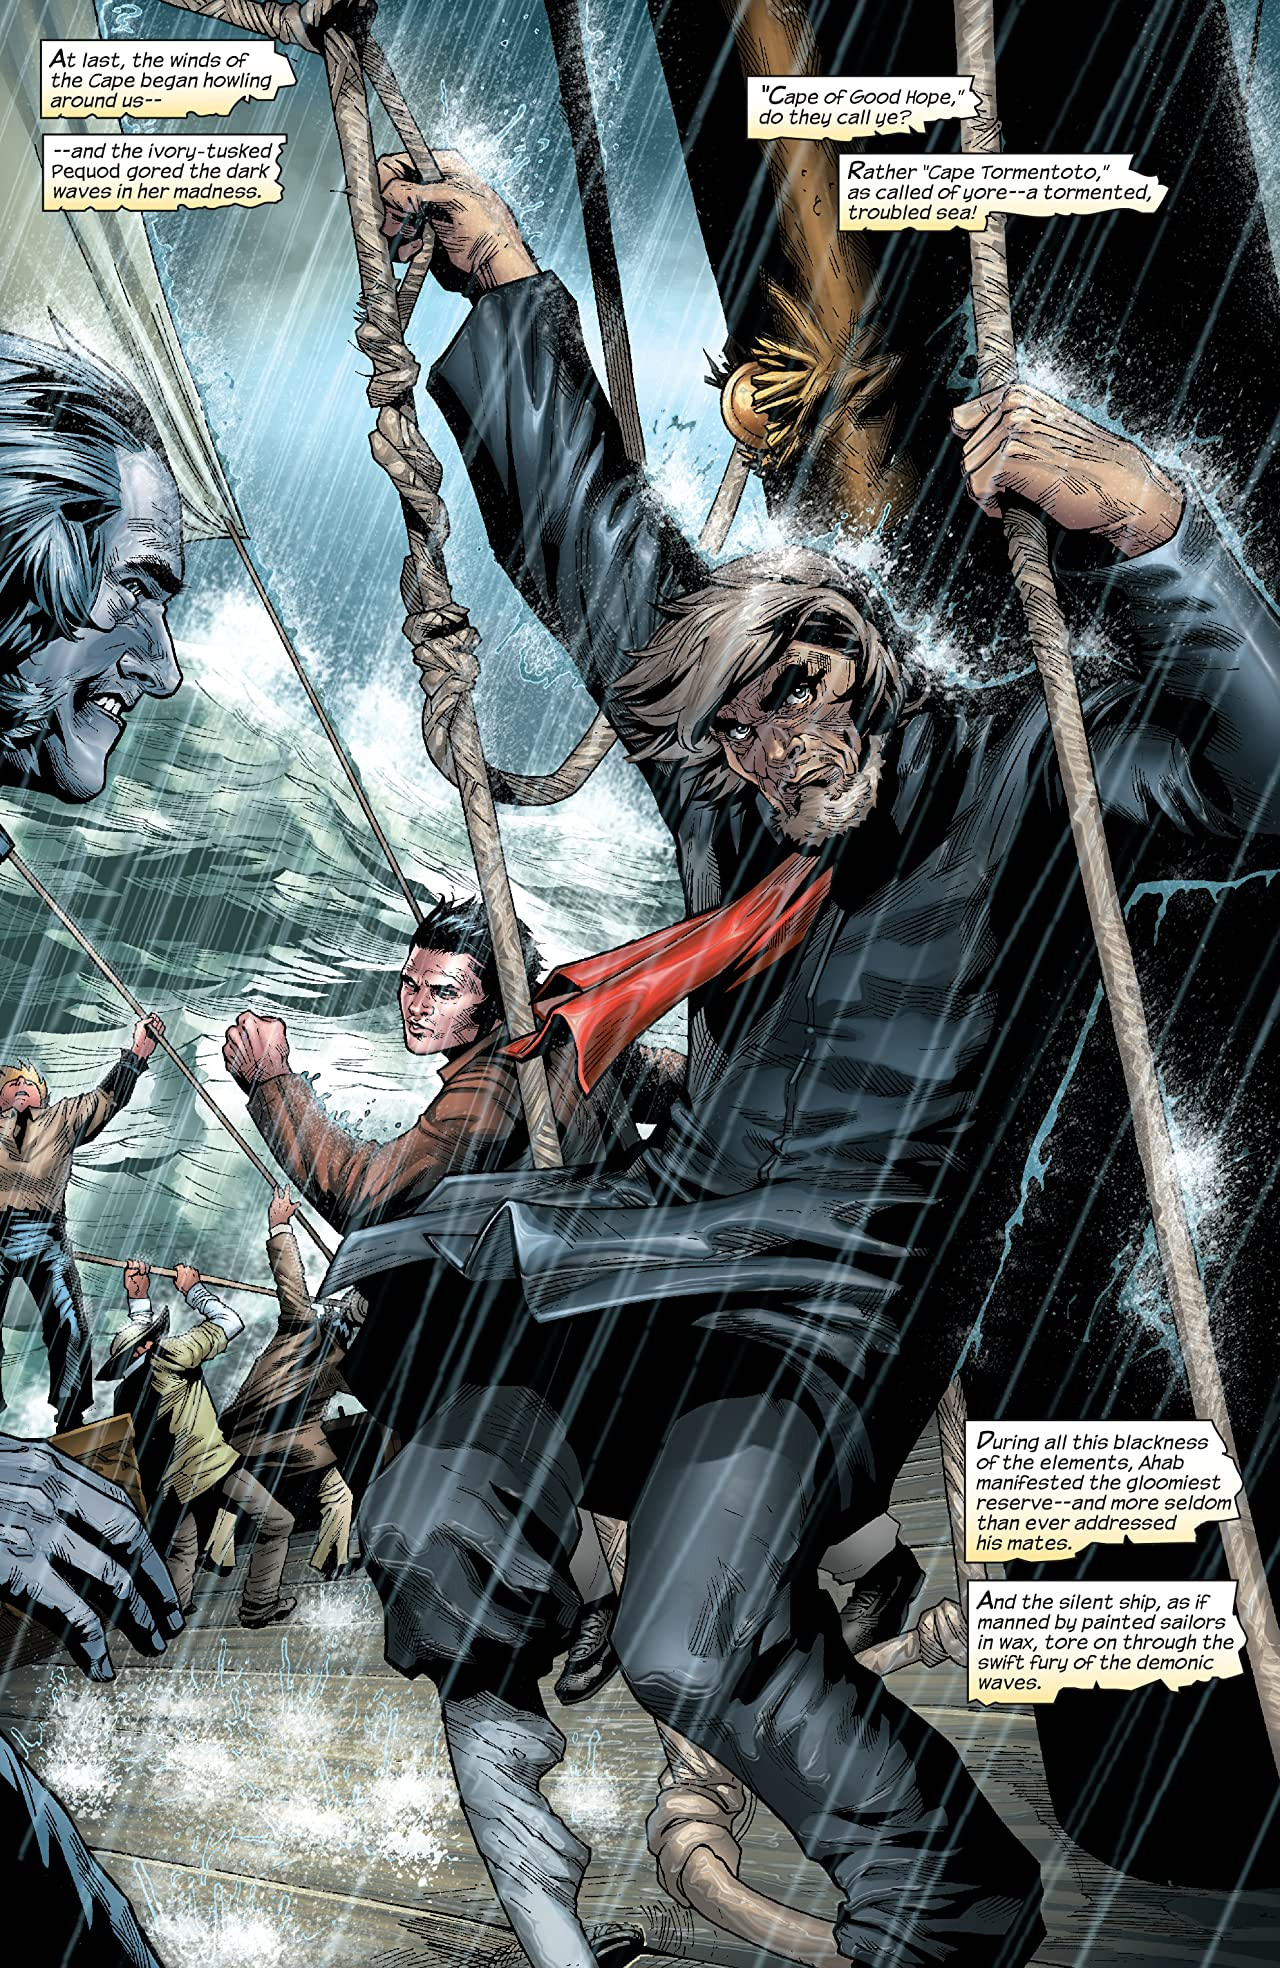 Marvel Illustrated: Moby Dick (2008) #3 (of 6)